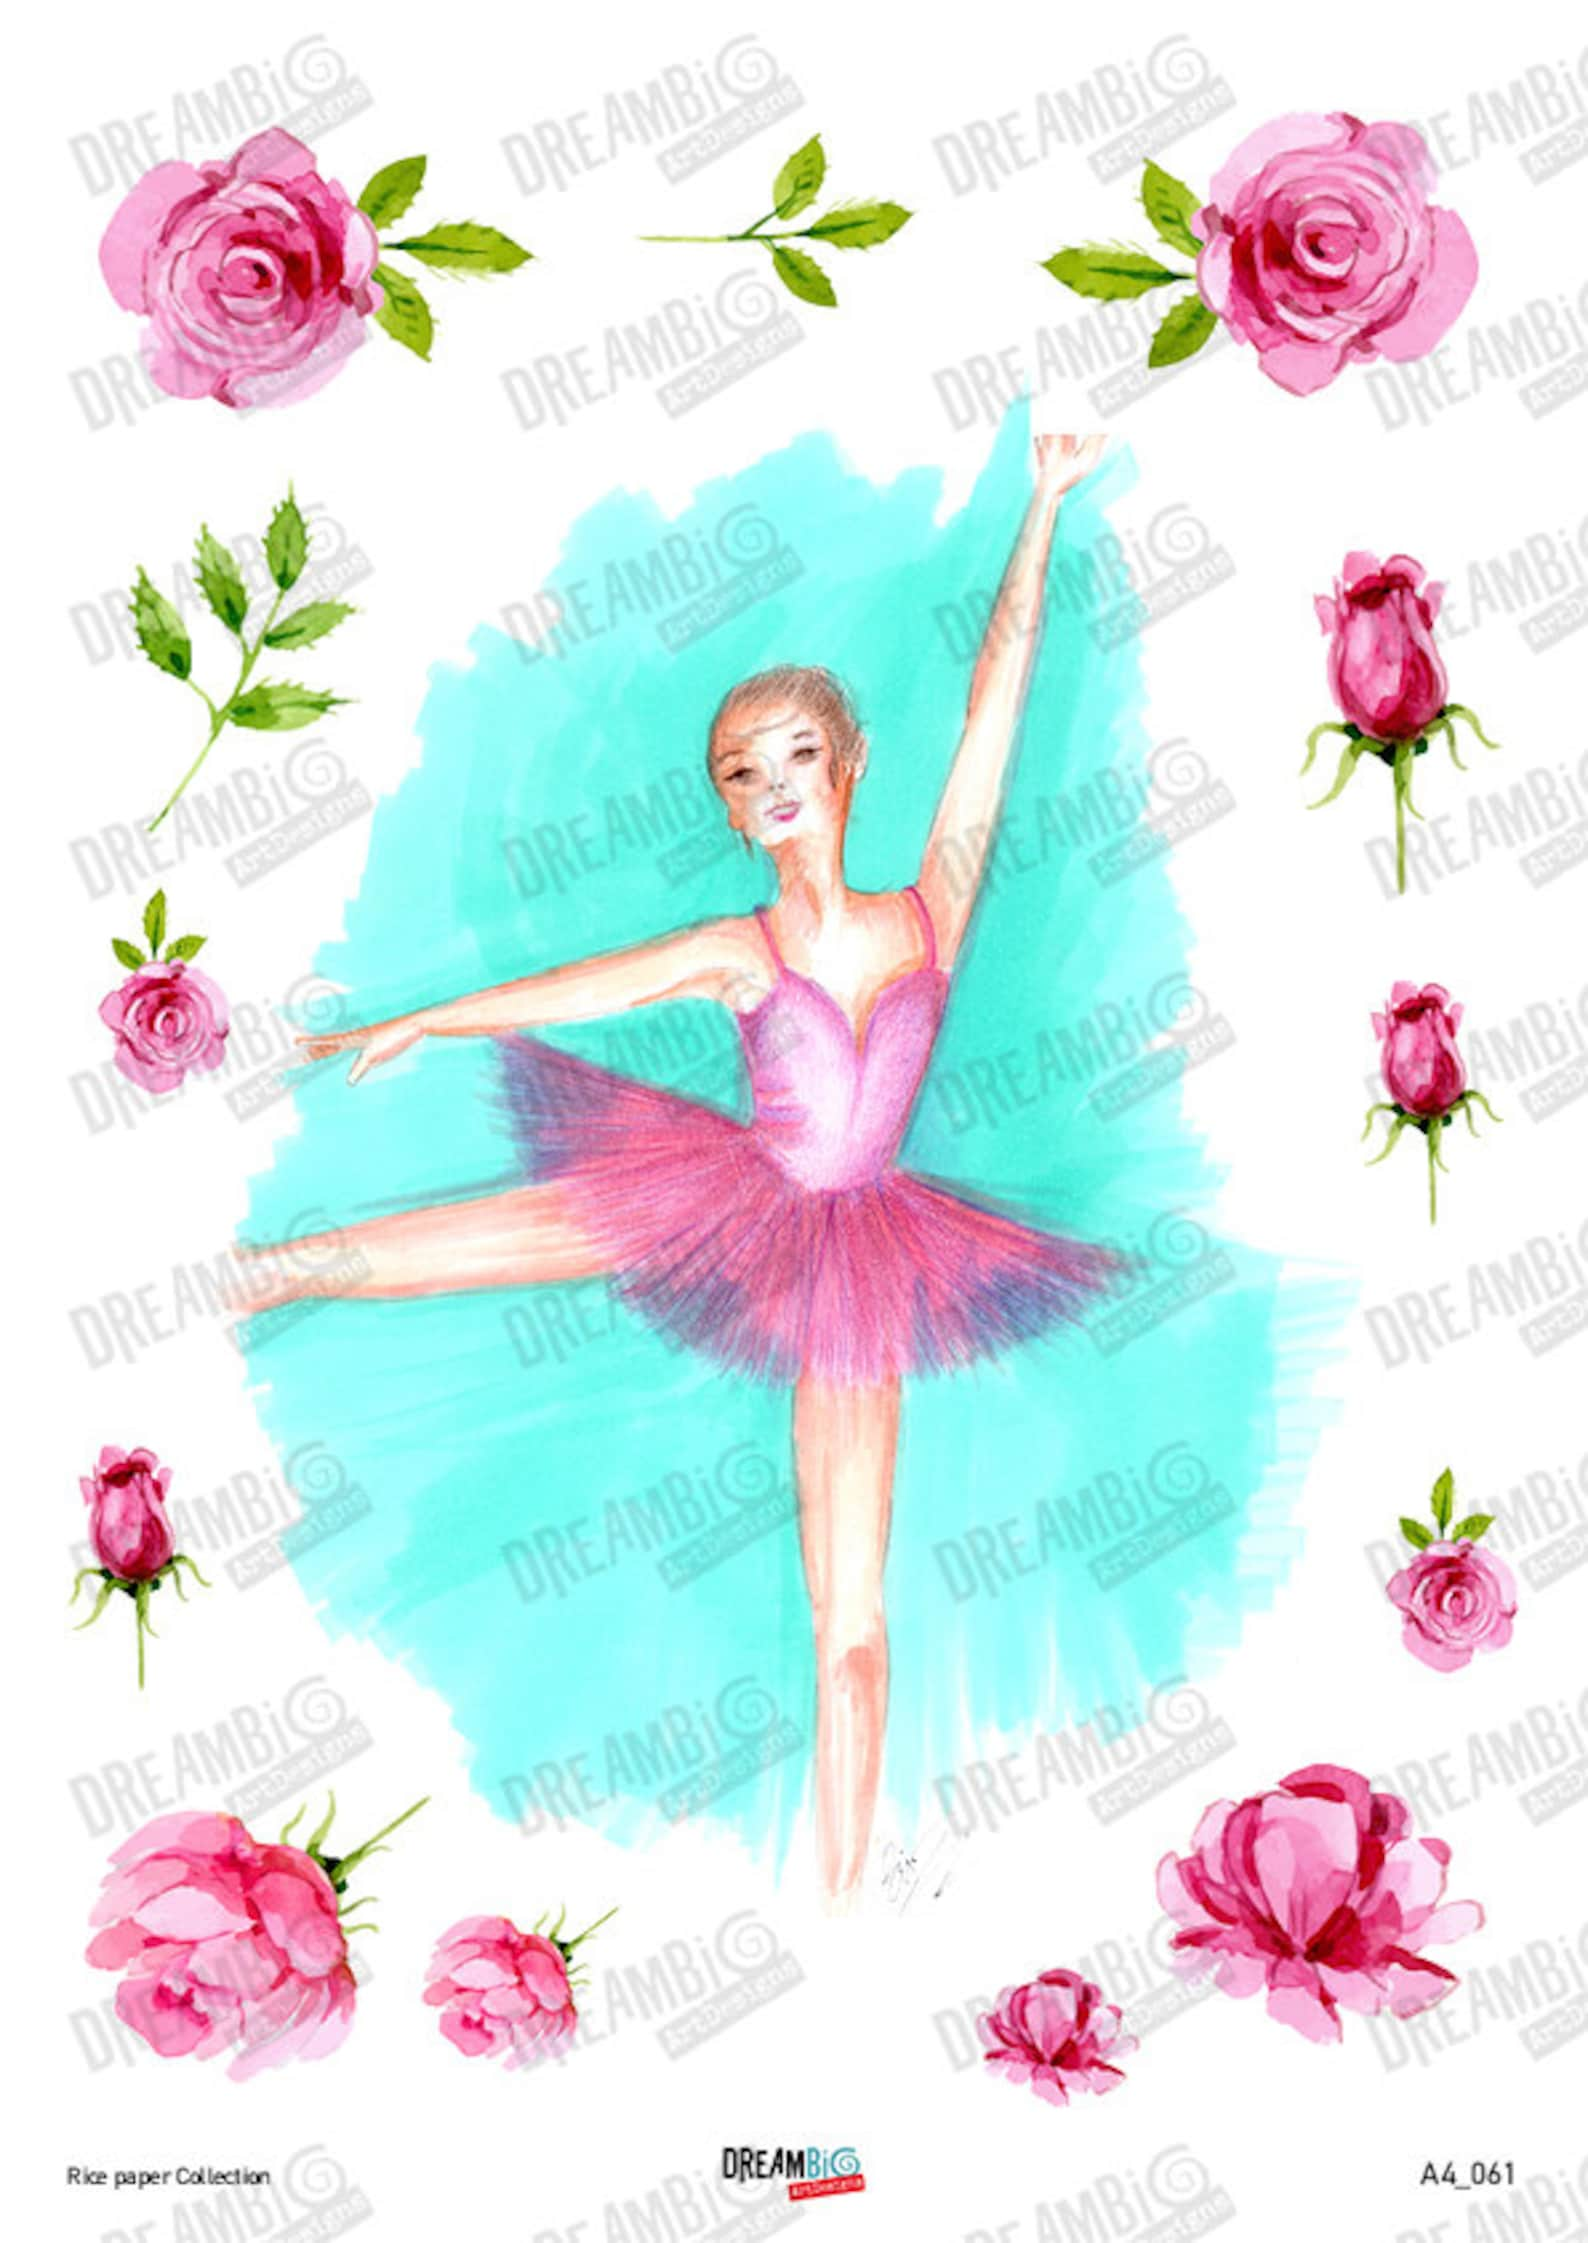 decoupage rice paper sheets a4 size ballet, ballerina, ballet shoes, pointe (no. 60,61)